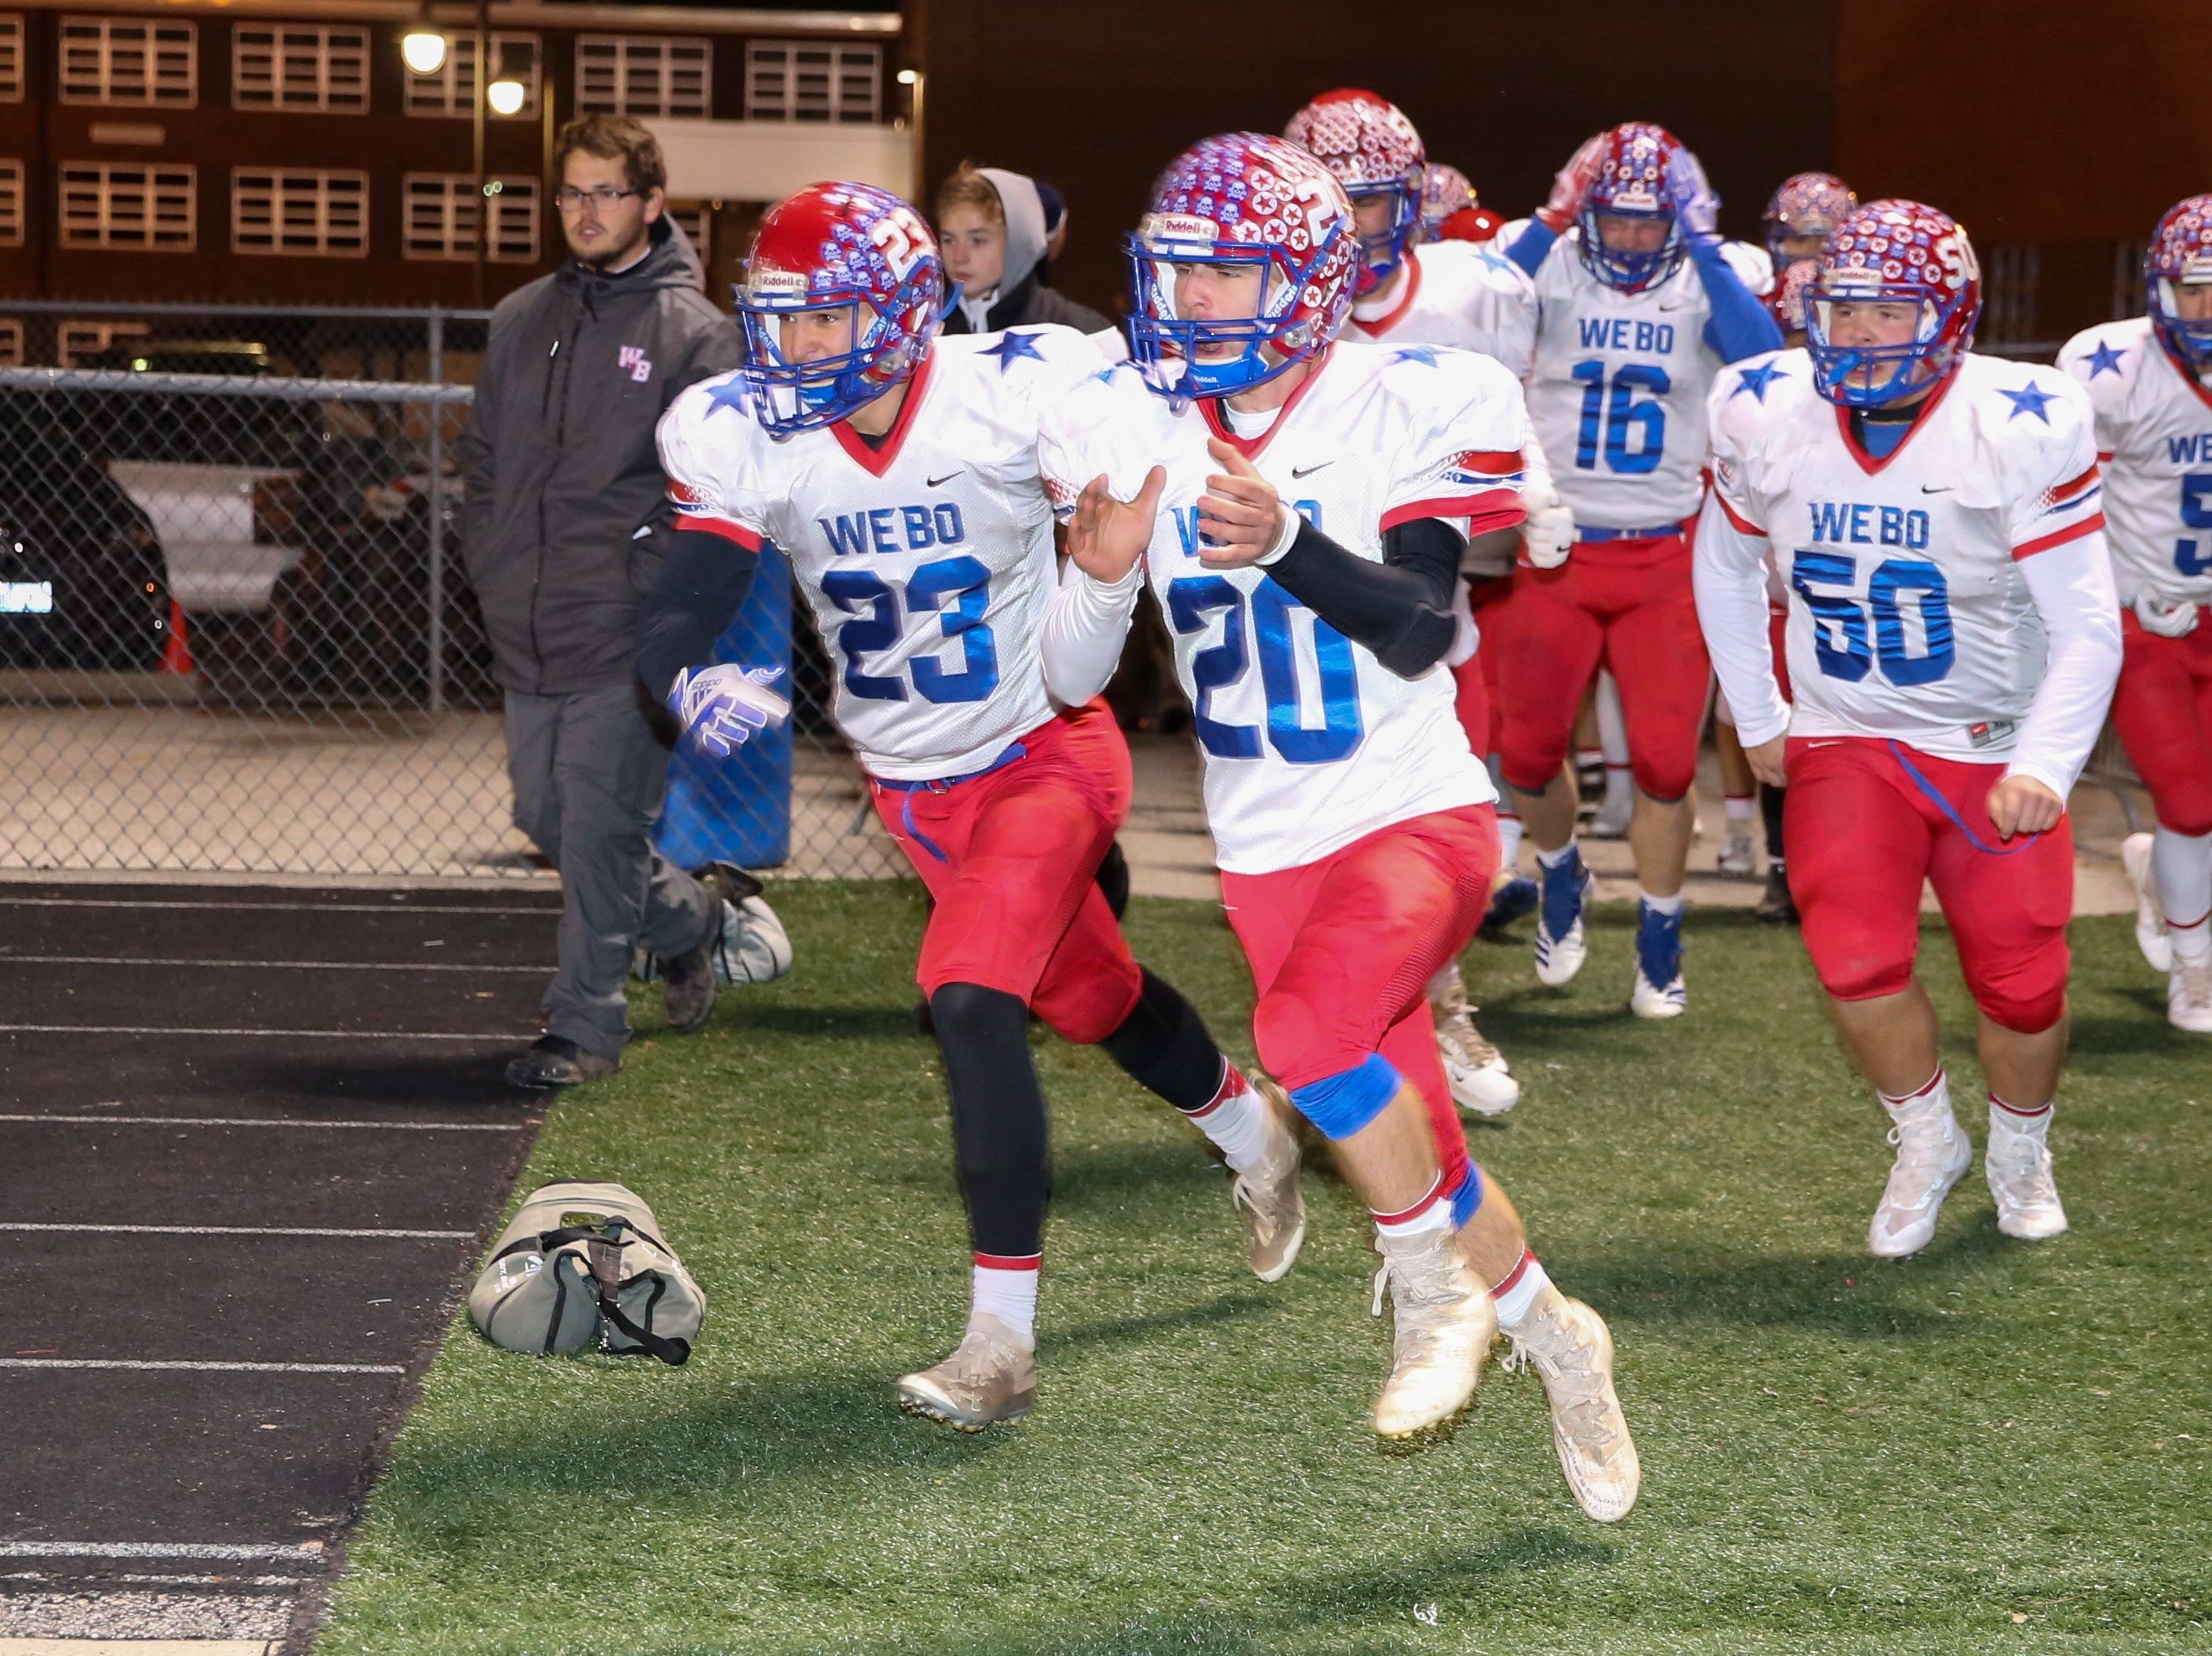 The Stars take the field for the start of Indianapolis Scecina vs Western Boone High School varsity football in the Class 2A Regional Championship held at Roncalli High School, Friday, November 9, 2018.